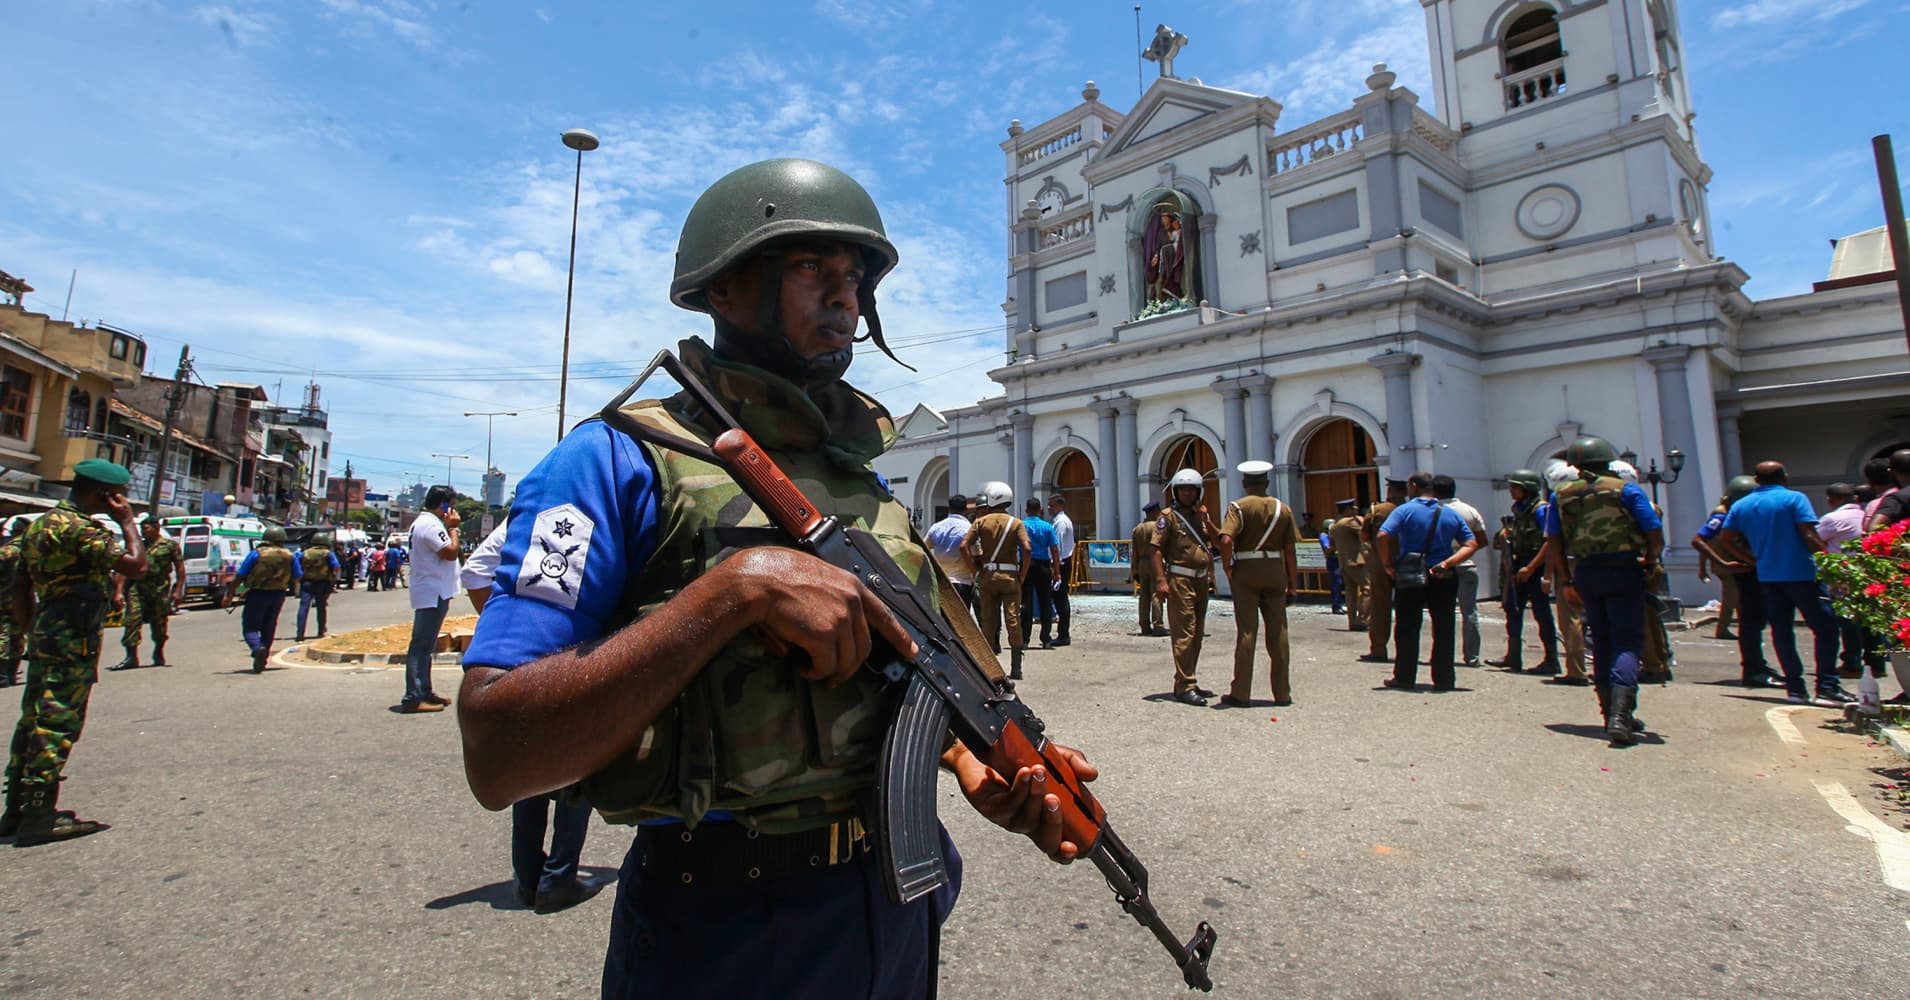 Sri Lanka says attacks carried out by suicide bombers, international network involved